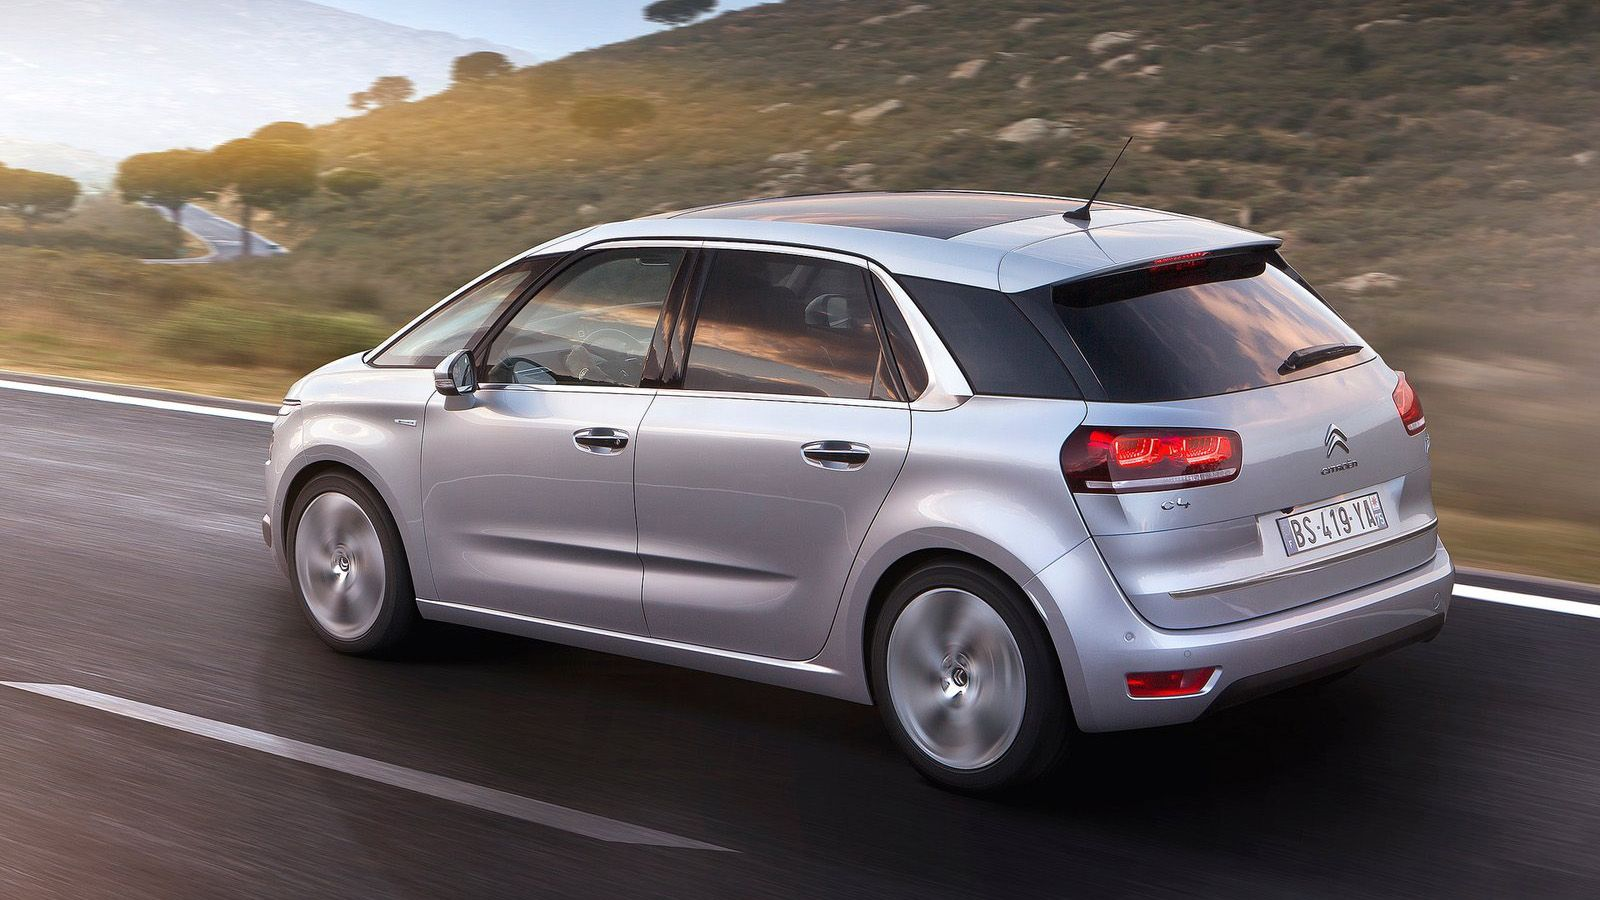 citroen c4 2015 on road